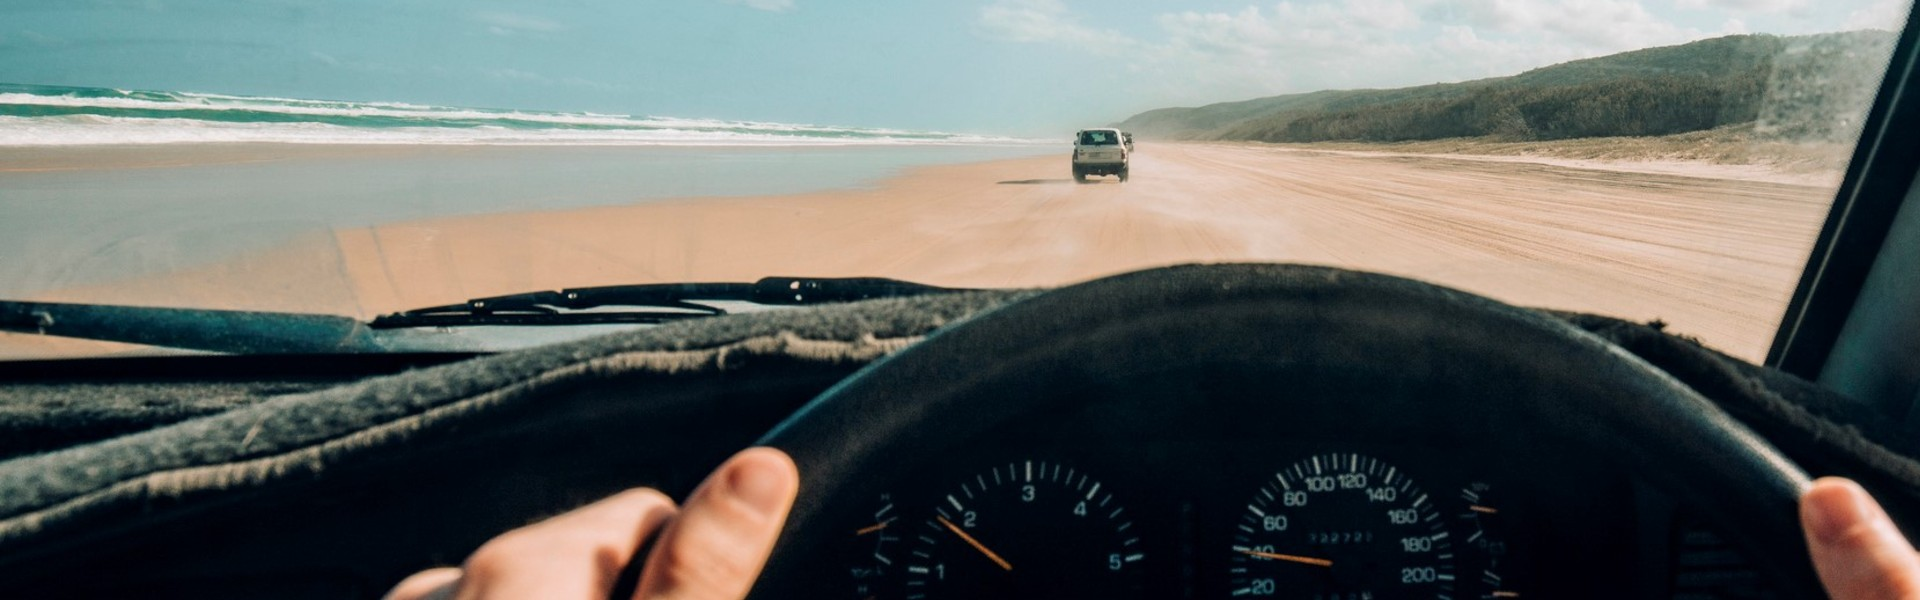 Driving a Bingle insured car on the beach at Fraser Island, Queensland.